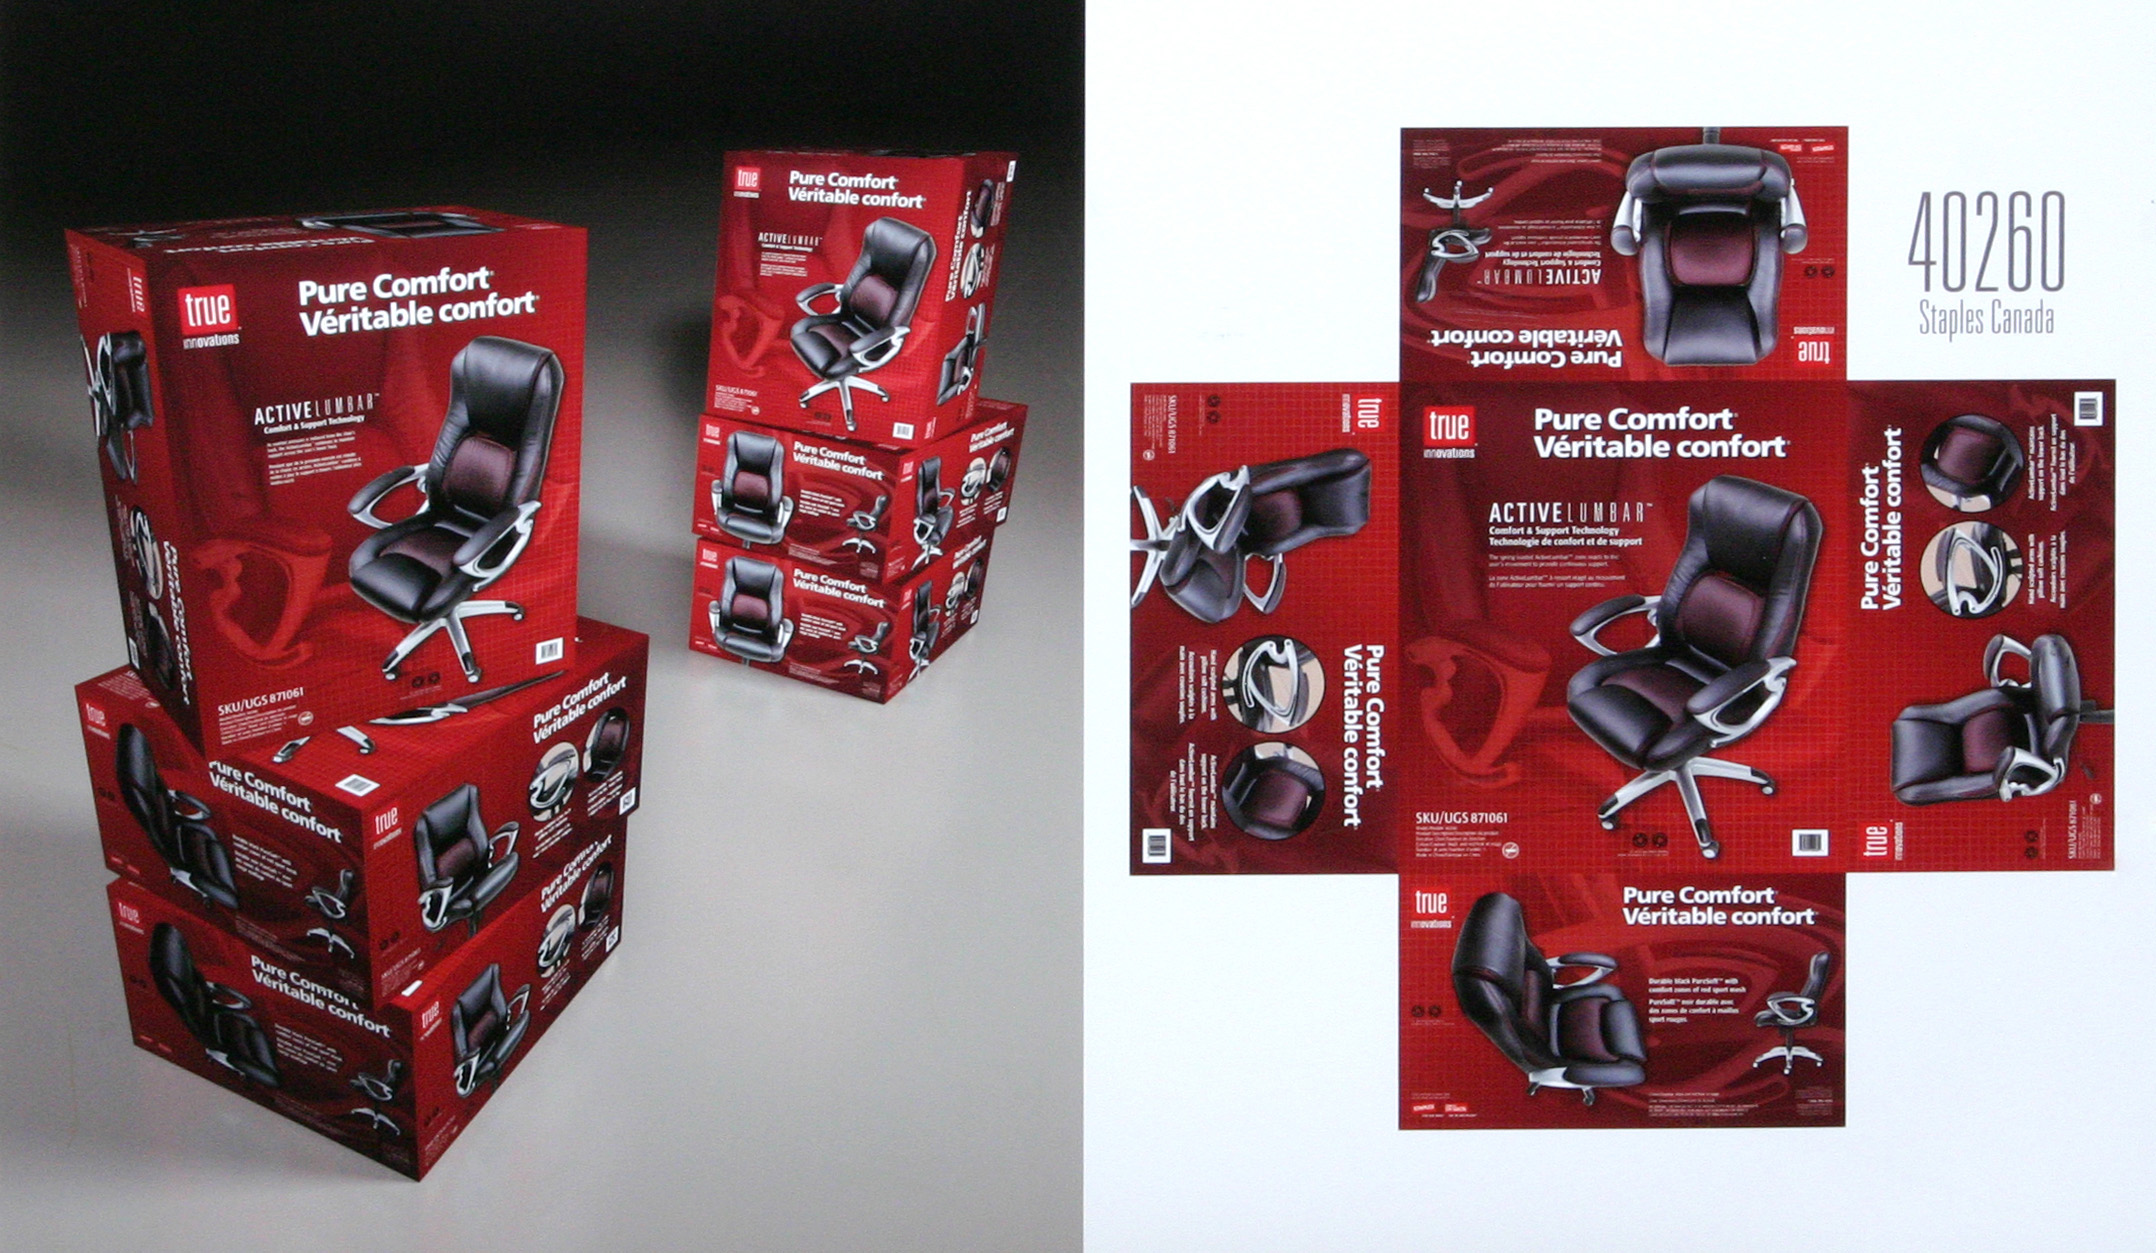 Staples Canada Packaging